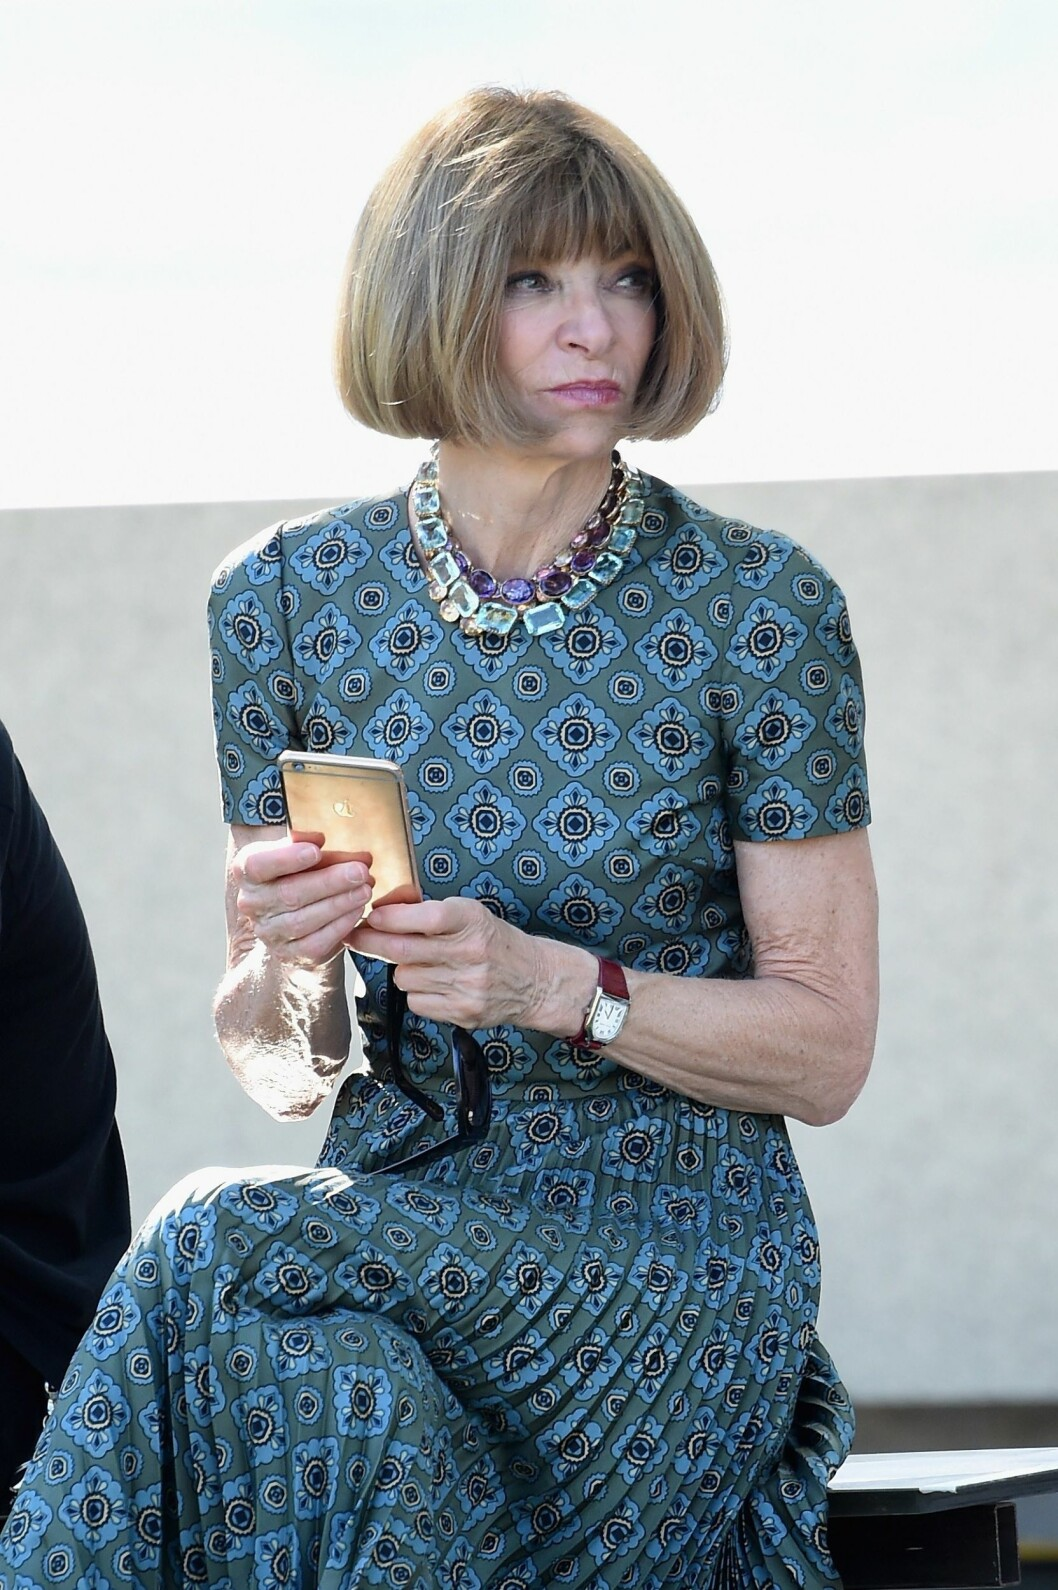 NEW YORK, NY - SEPTEMBER 07: Vogue Editor-in-Chief Anna Wintour attends the Kanye West Yeezy Season 4 fashion show on September 7, 2016 in New York City.   Jamie McCarthy/Getty Images for Yeezy Season 4/AFP == FOR NEWSPAPERS, INTERNET, TELCOS & TELEVISION USE  data-cke-saved-ONLY == ONLY == Foto: Afp